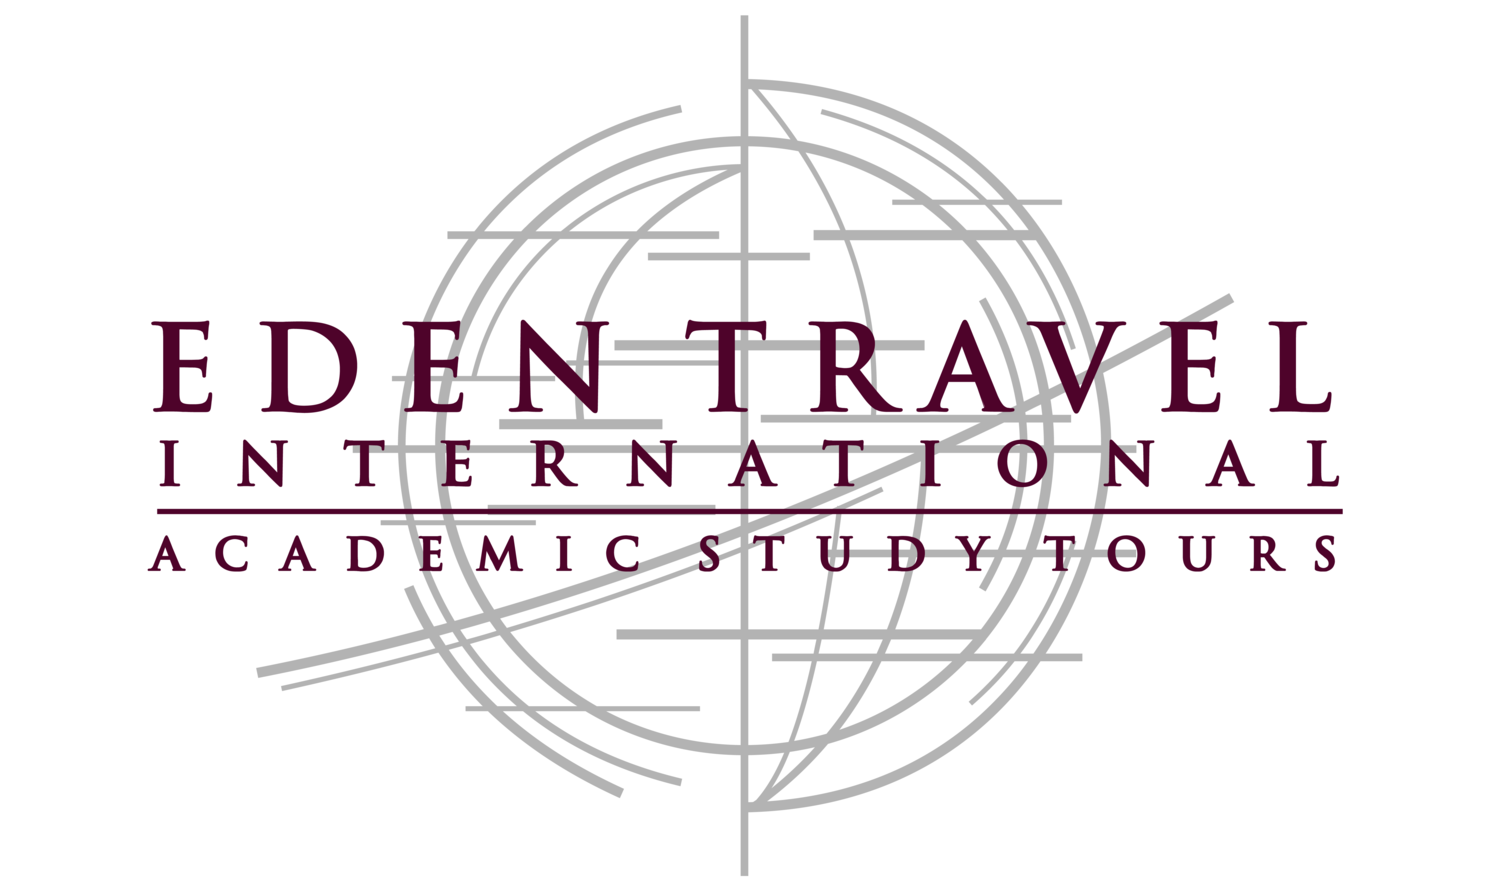 Eden Travel International